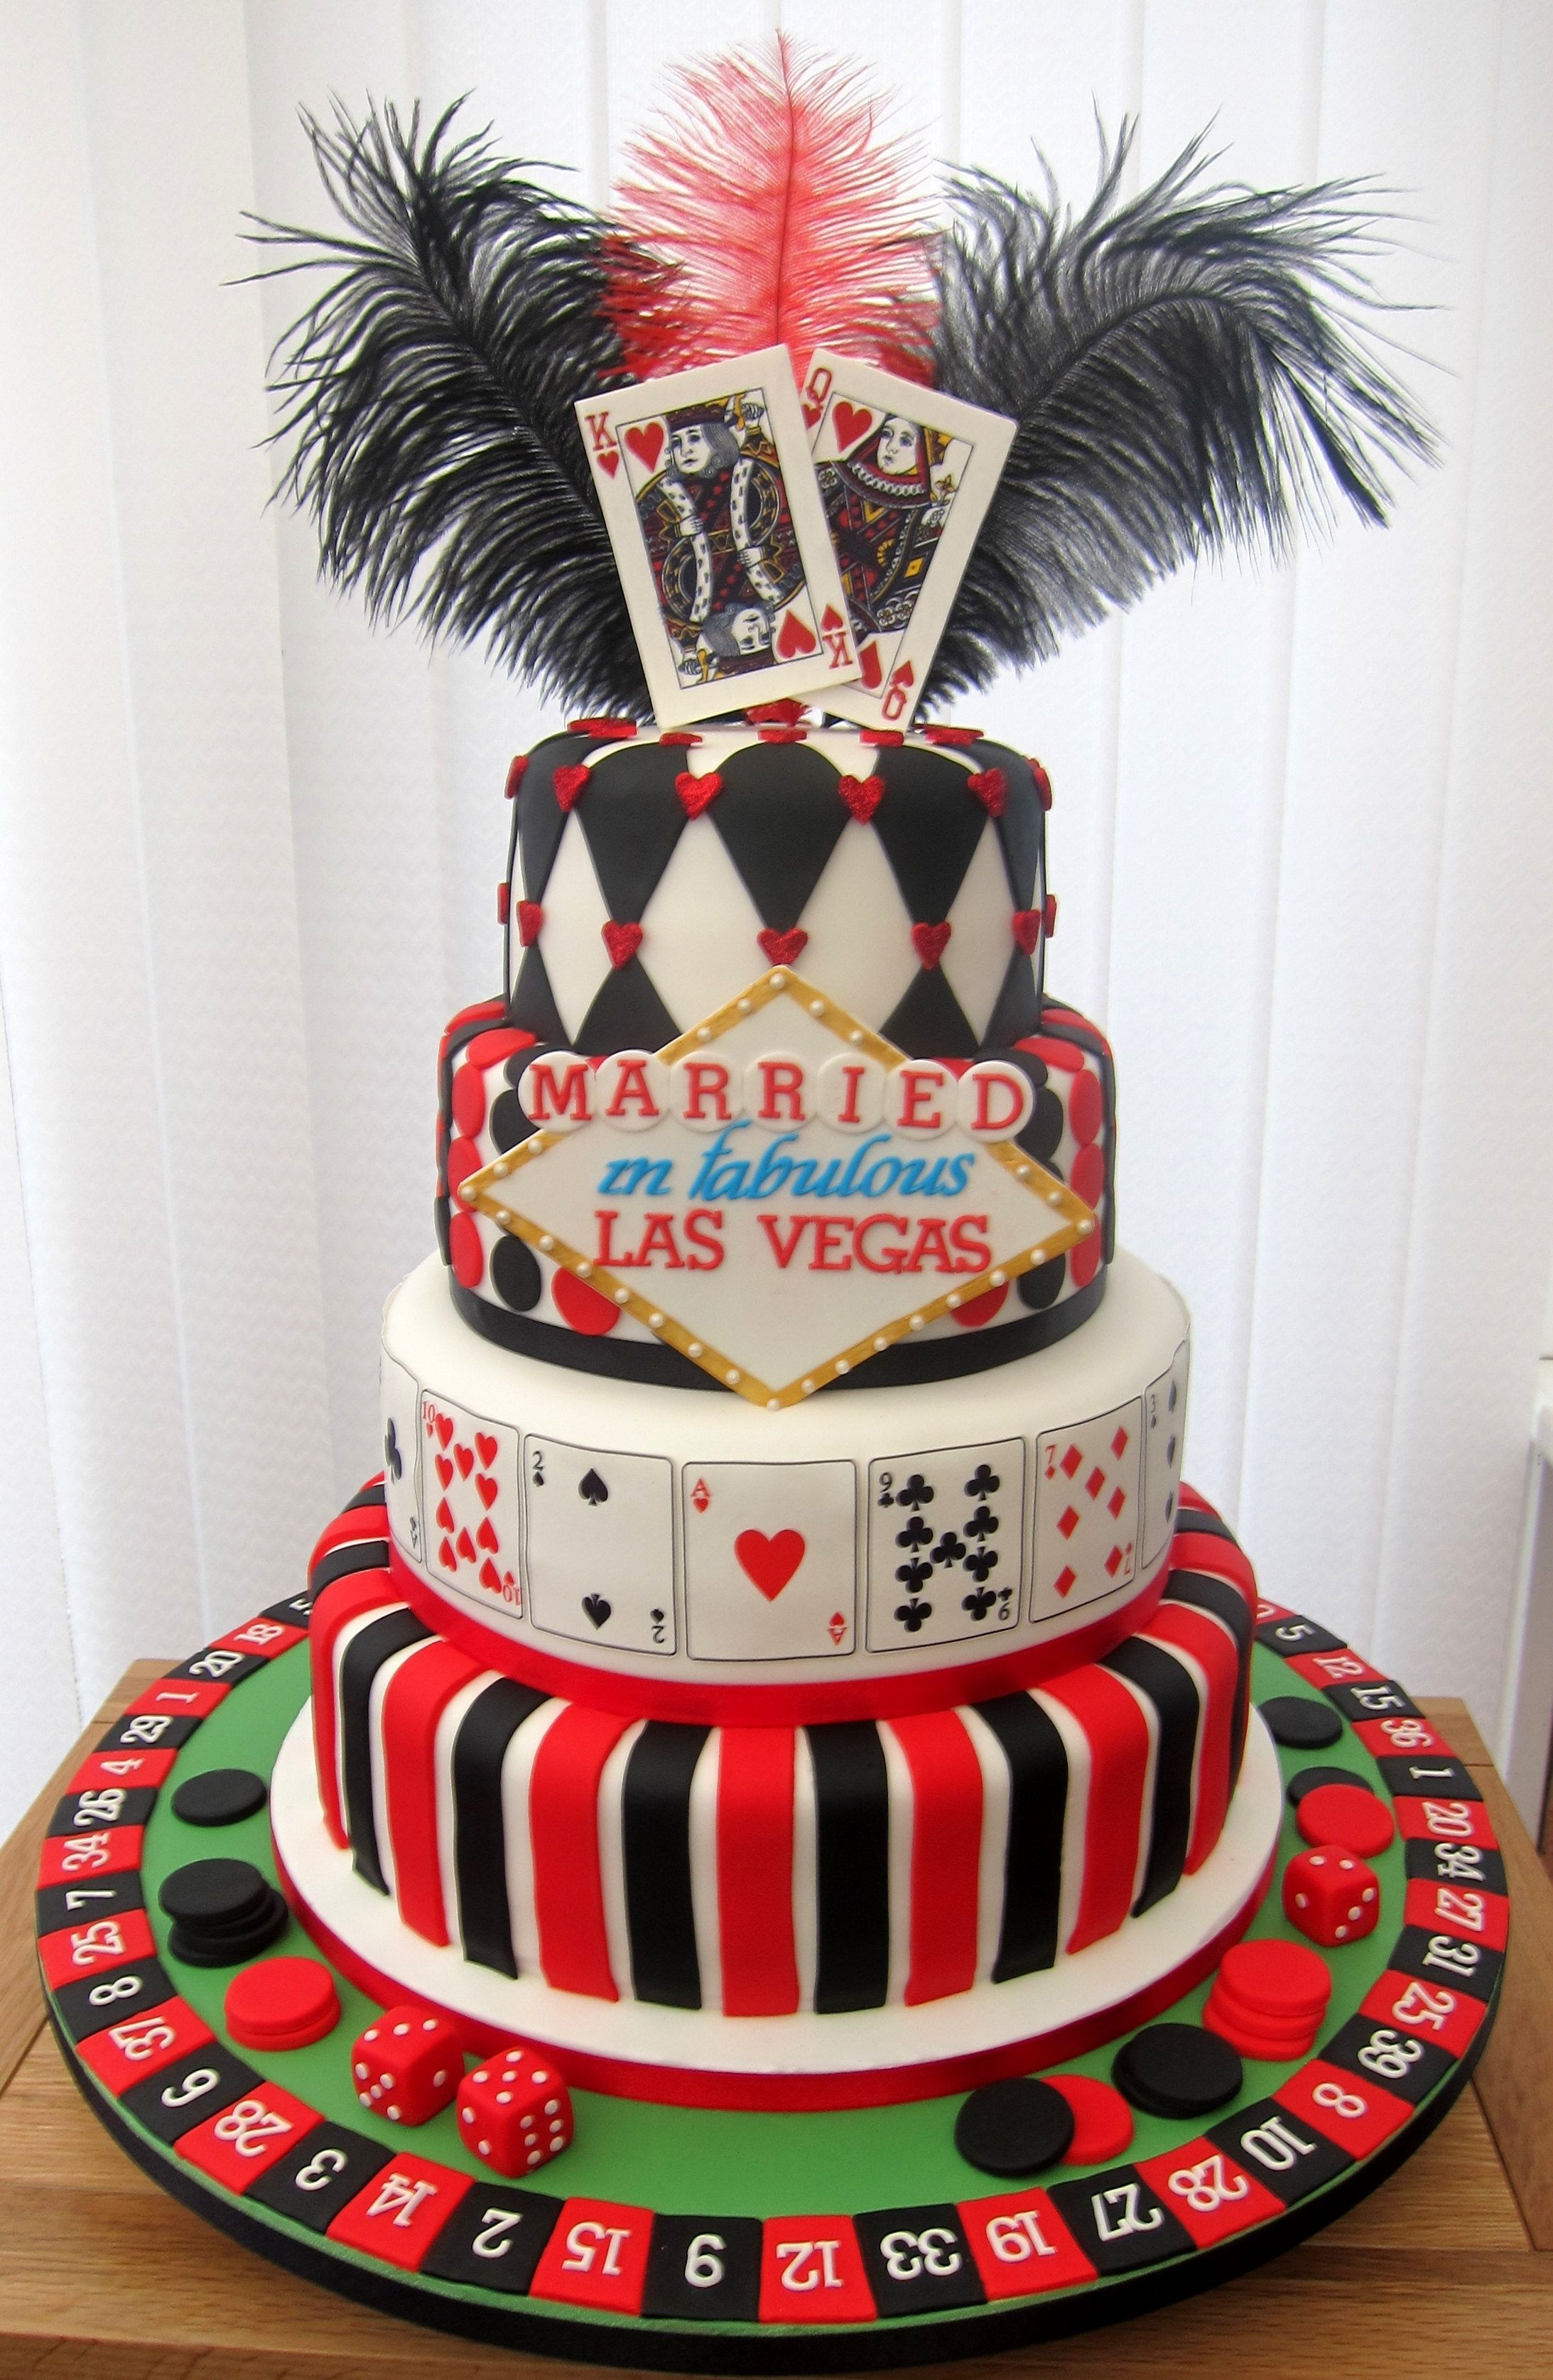 Best Wedding Cakes Las Vegas  Wedding cake for a couple who were married in vegas and